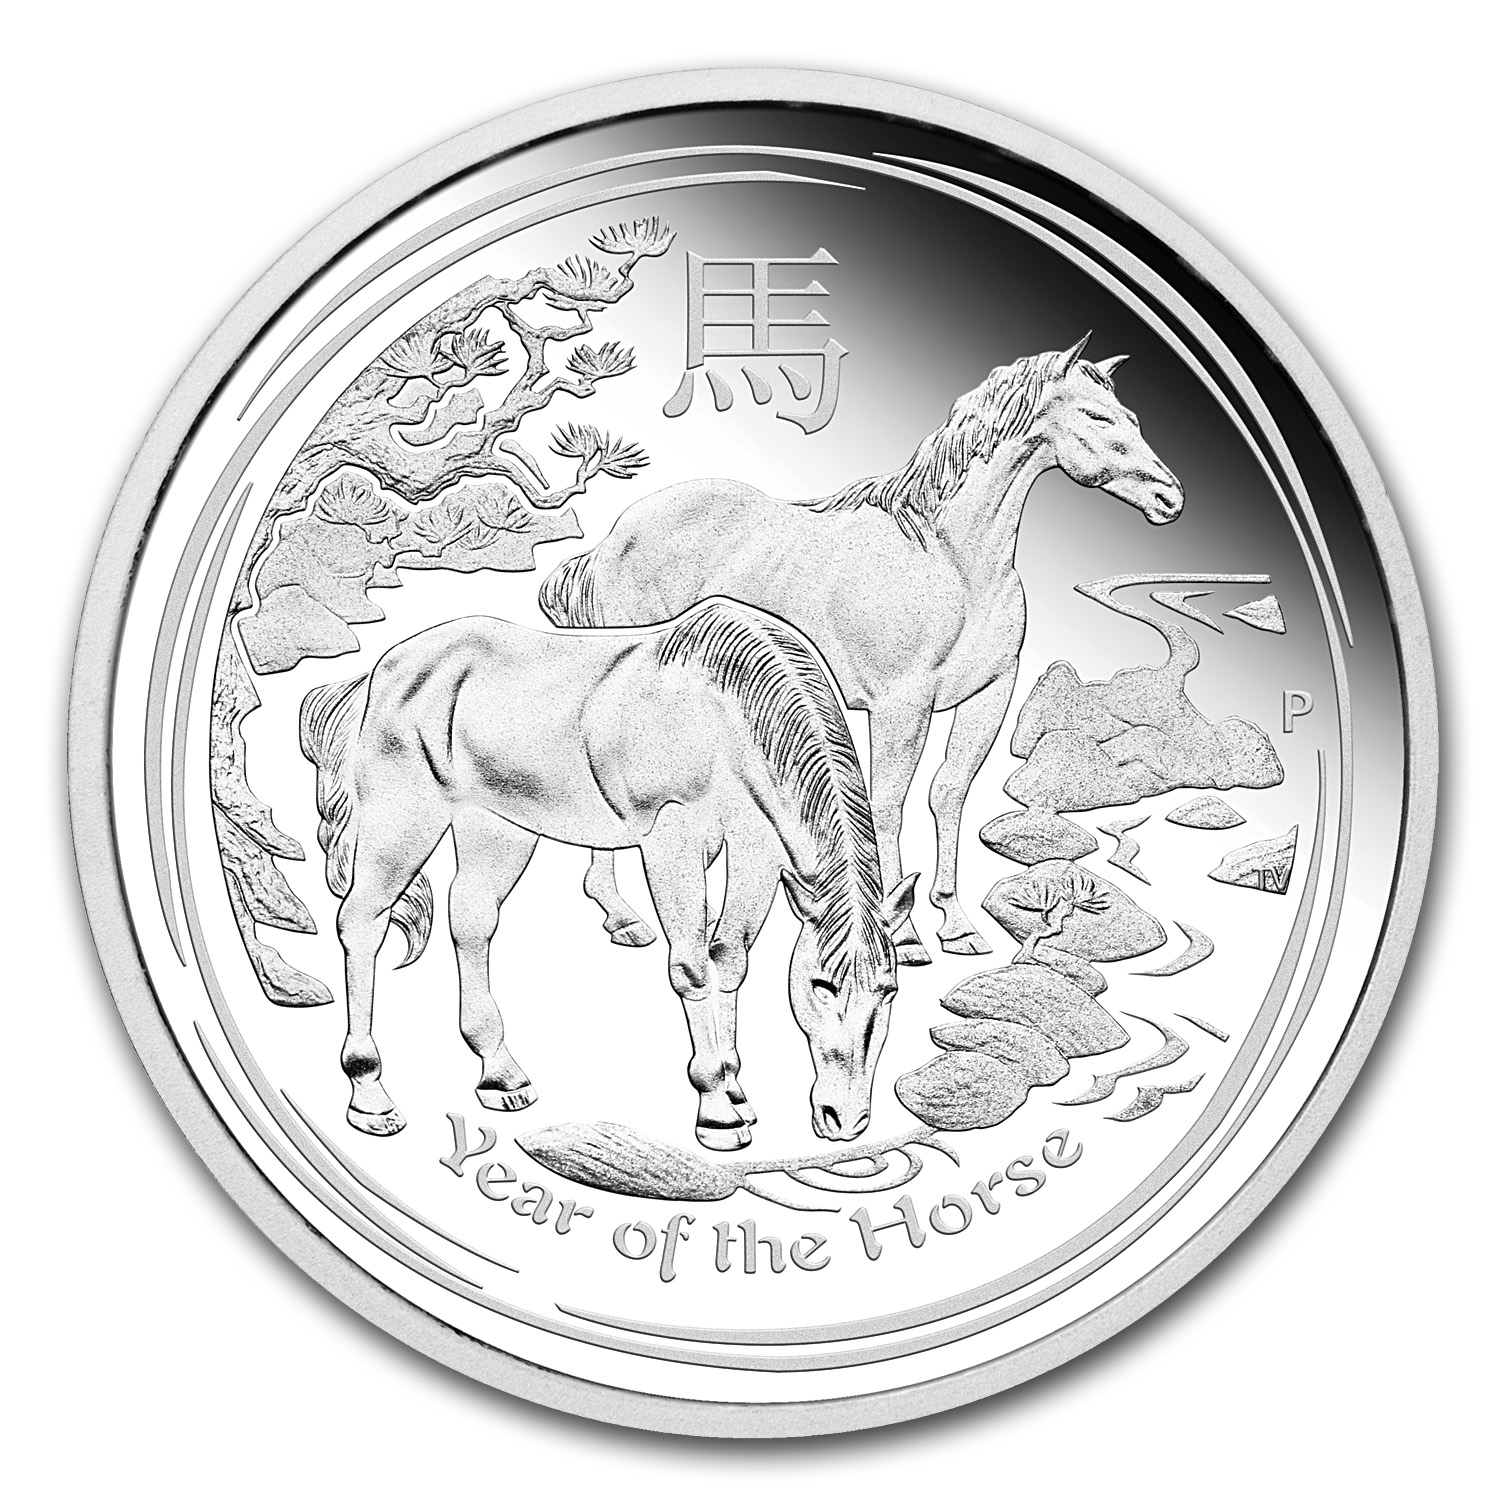 2014 1 oz Silver Australian Year of the Horse Proof